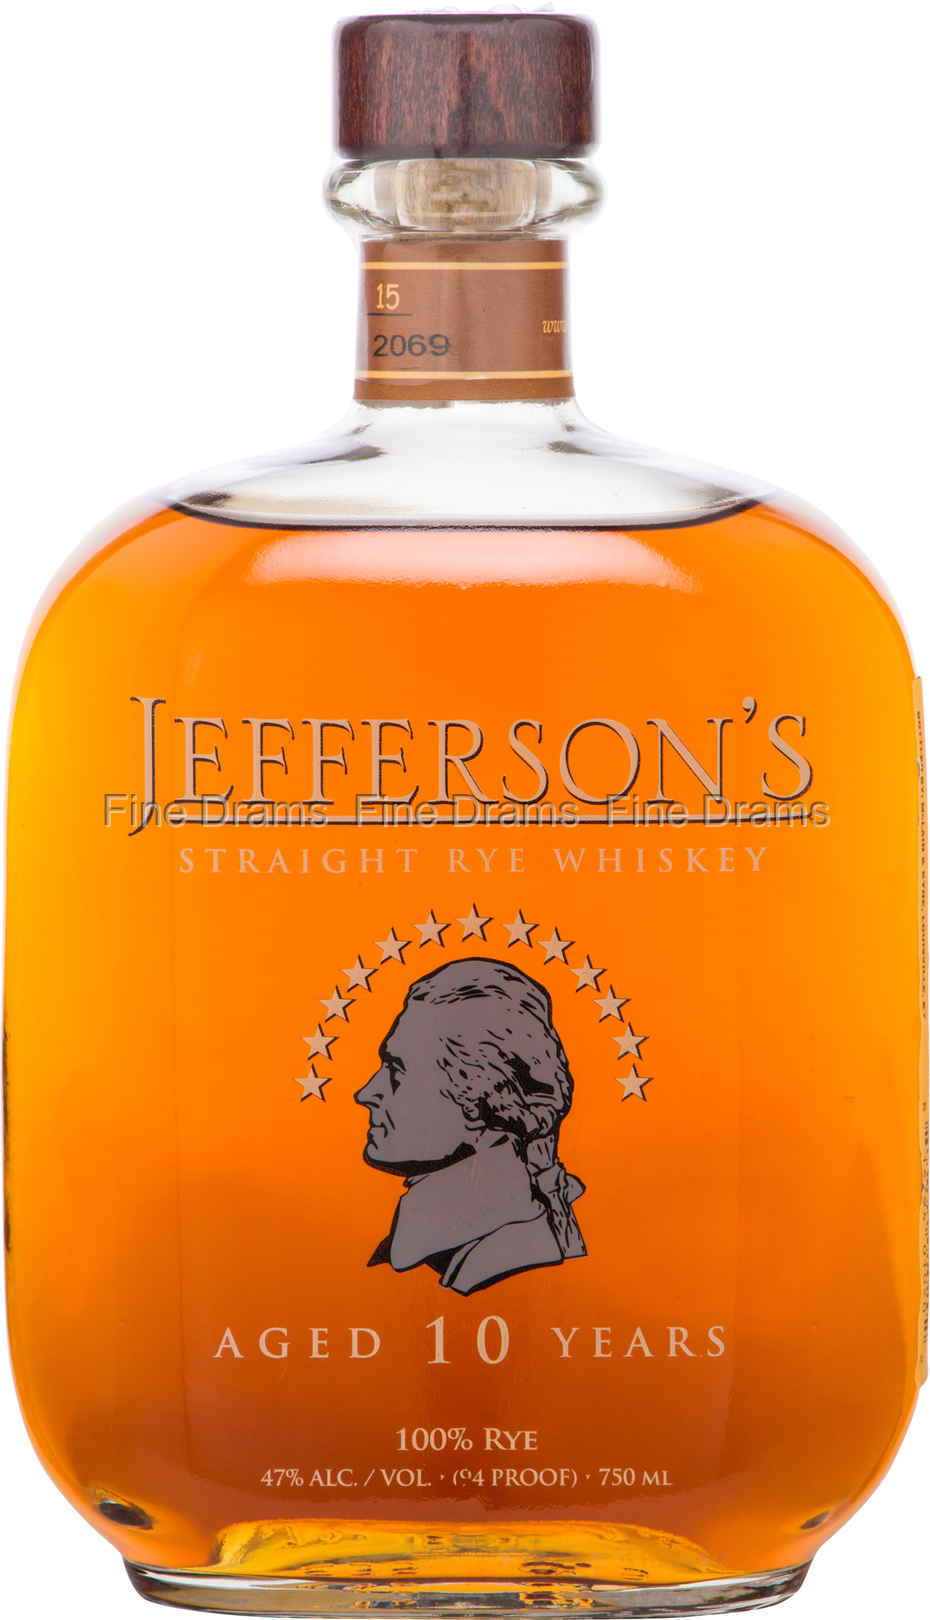 7bcd1cab0ce Jefferson s 10 Year Old Rye Whisky